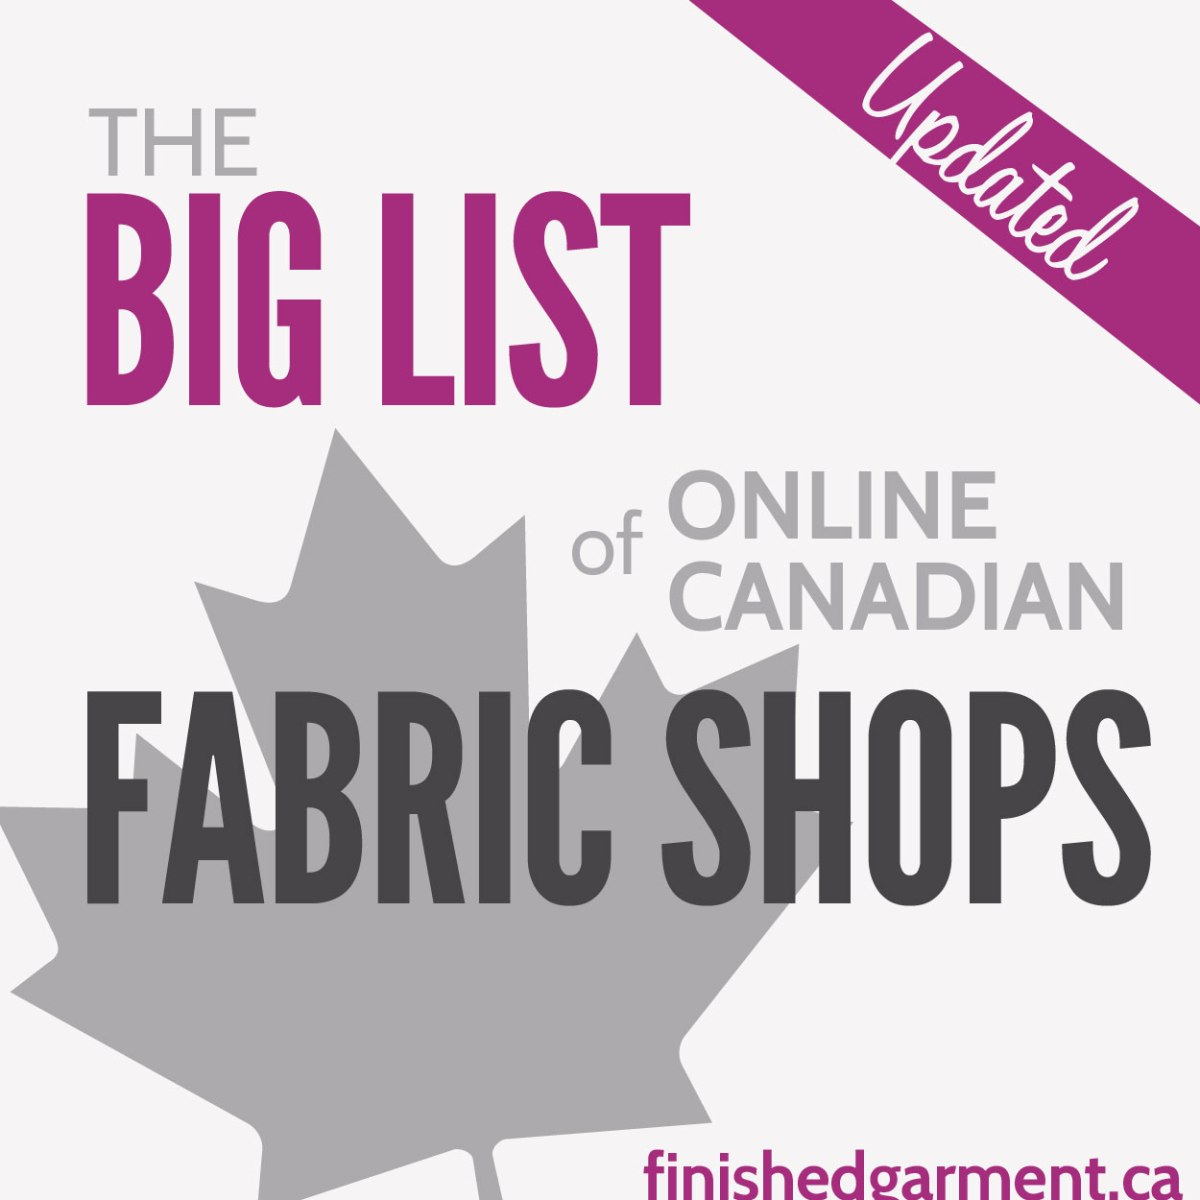 The Big List of Online Canadian Fabric, Pattern and Notion Stores